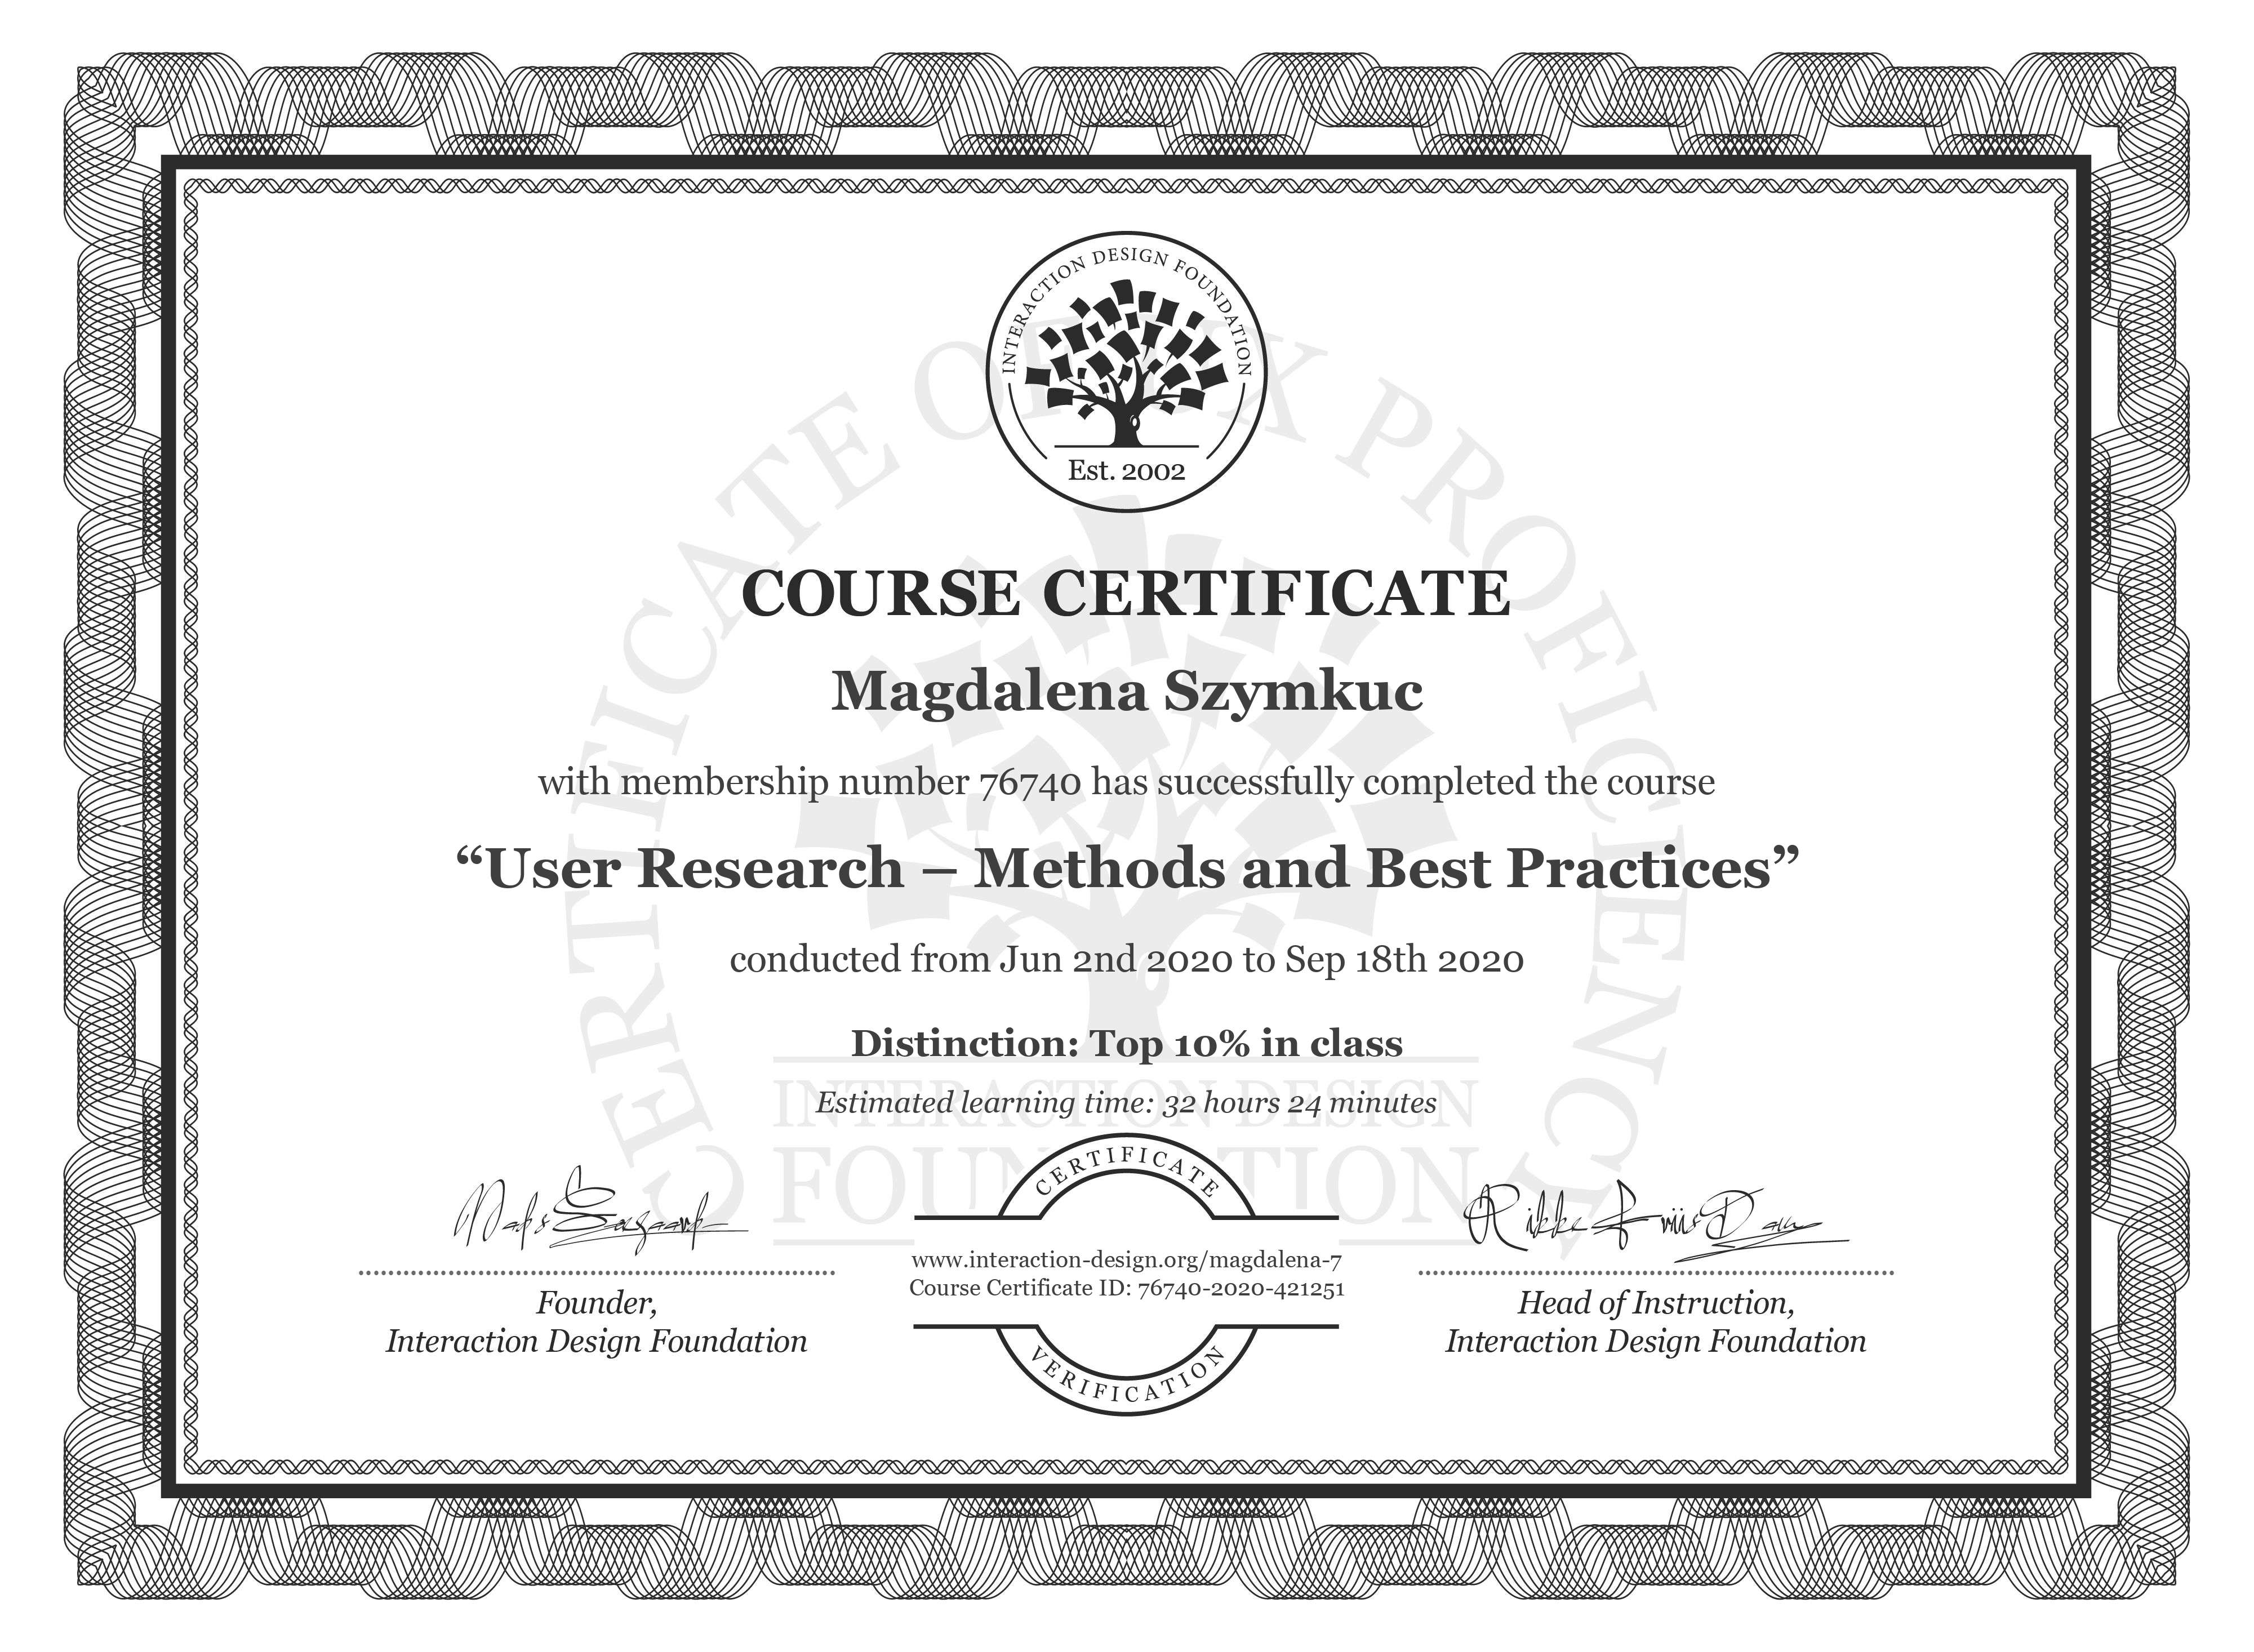 Magdalena Szymkuć's Course Certificate: User Research – Methods and Best Practices